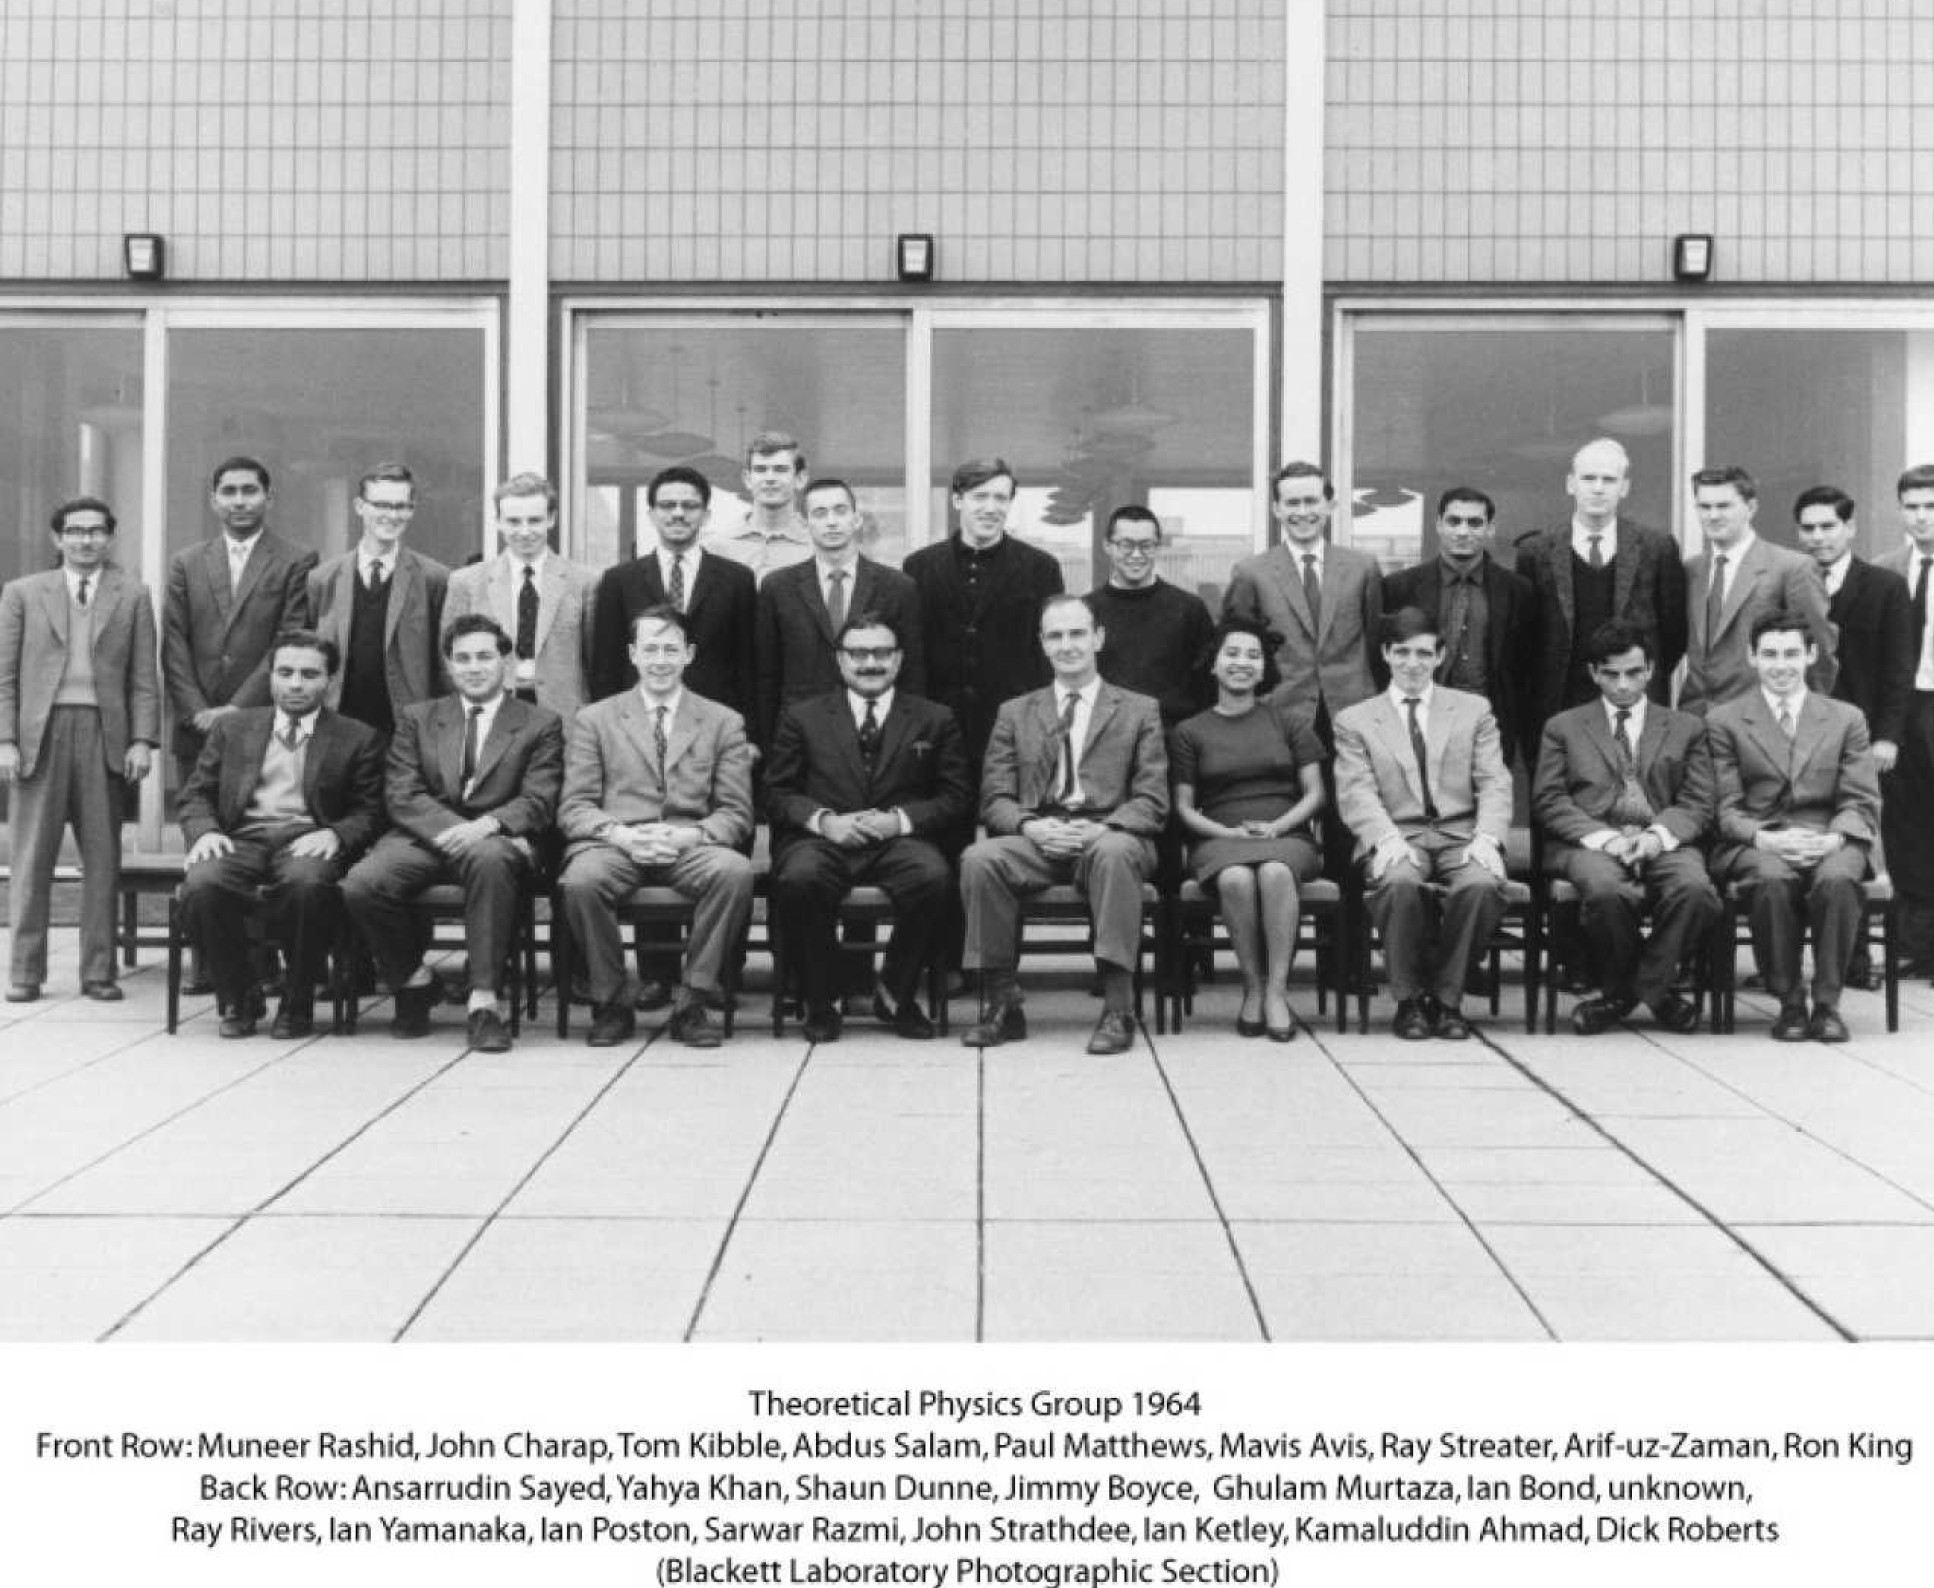 The Theoretical Physics group in 1964, with Salam at the front